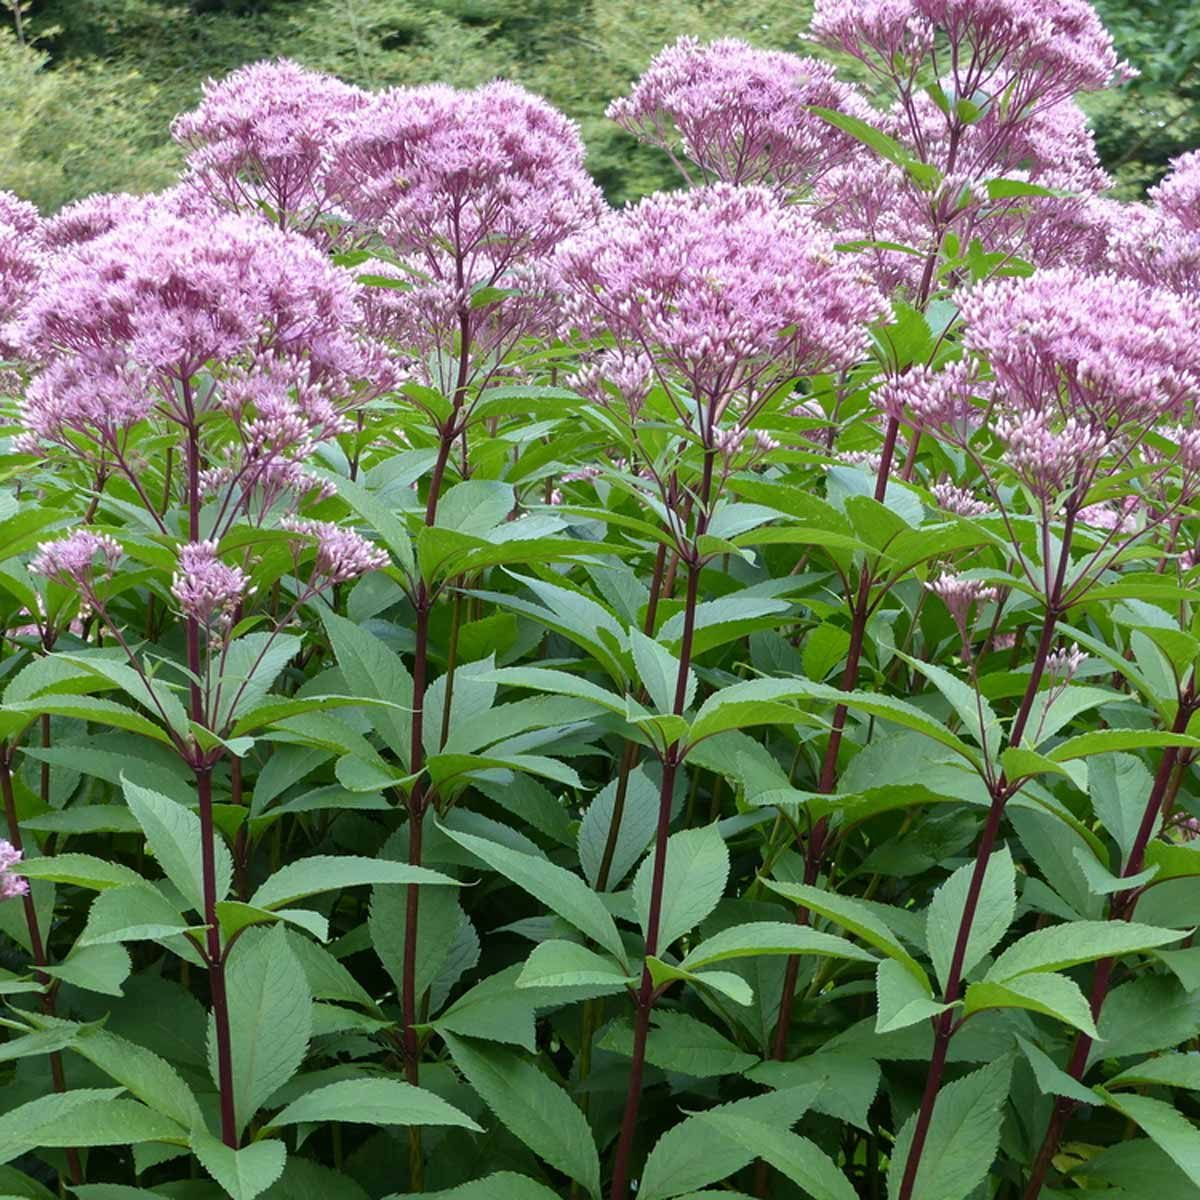 Pink Flowerheads On Eupatorium